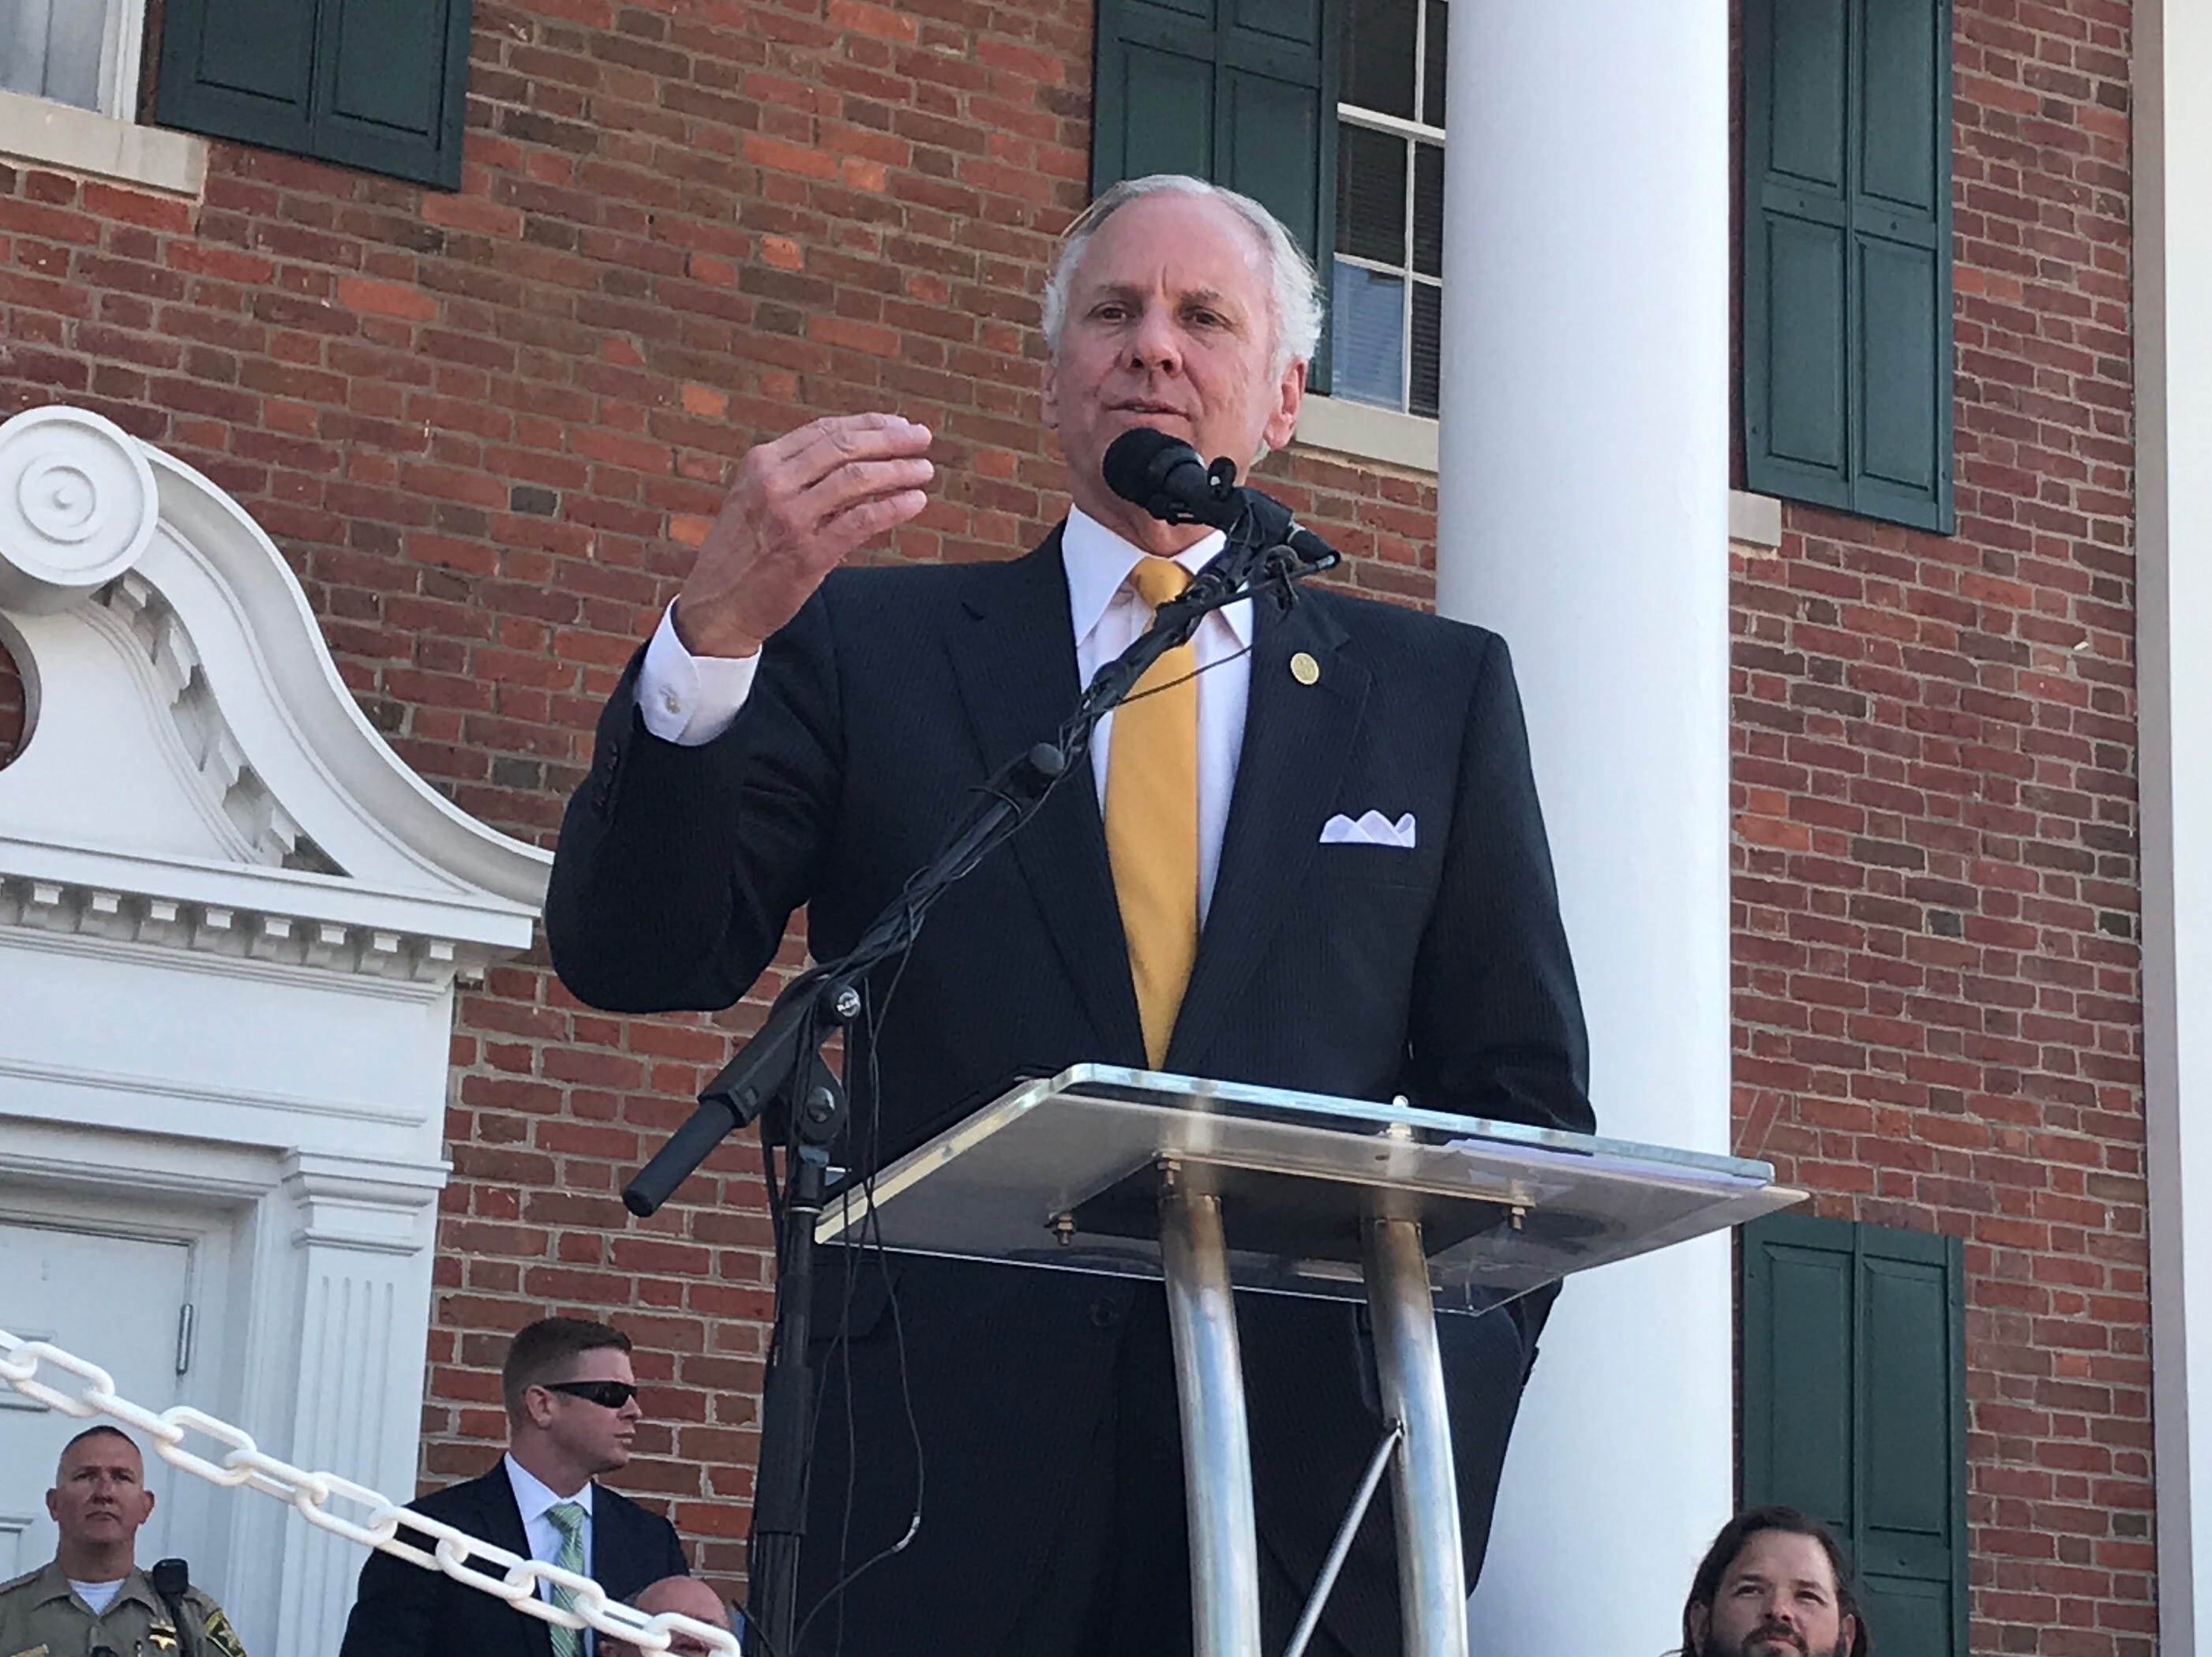 Gov. Henry McMaster addresses a crowd of about 300 in front of the Pickens County courthouse Friday as officials opened a time capsule in celebration of the county's Sesquicentennial.